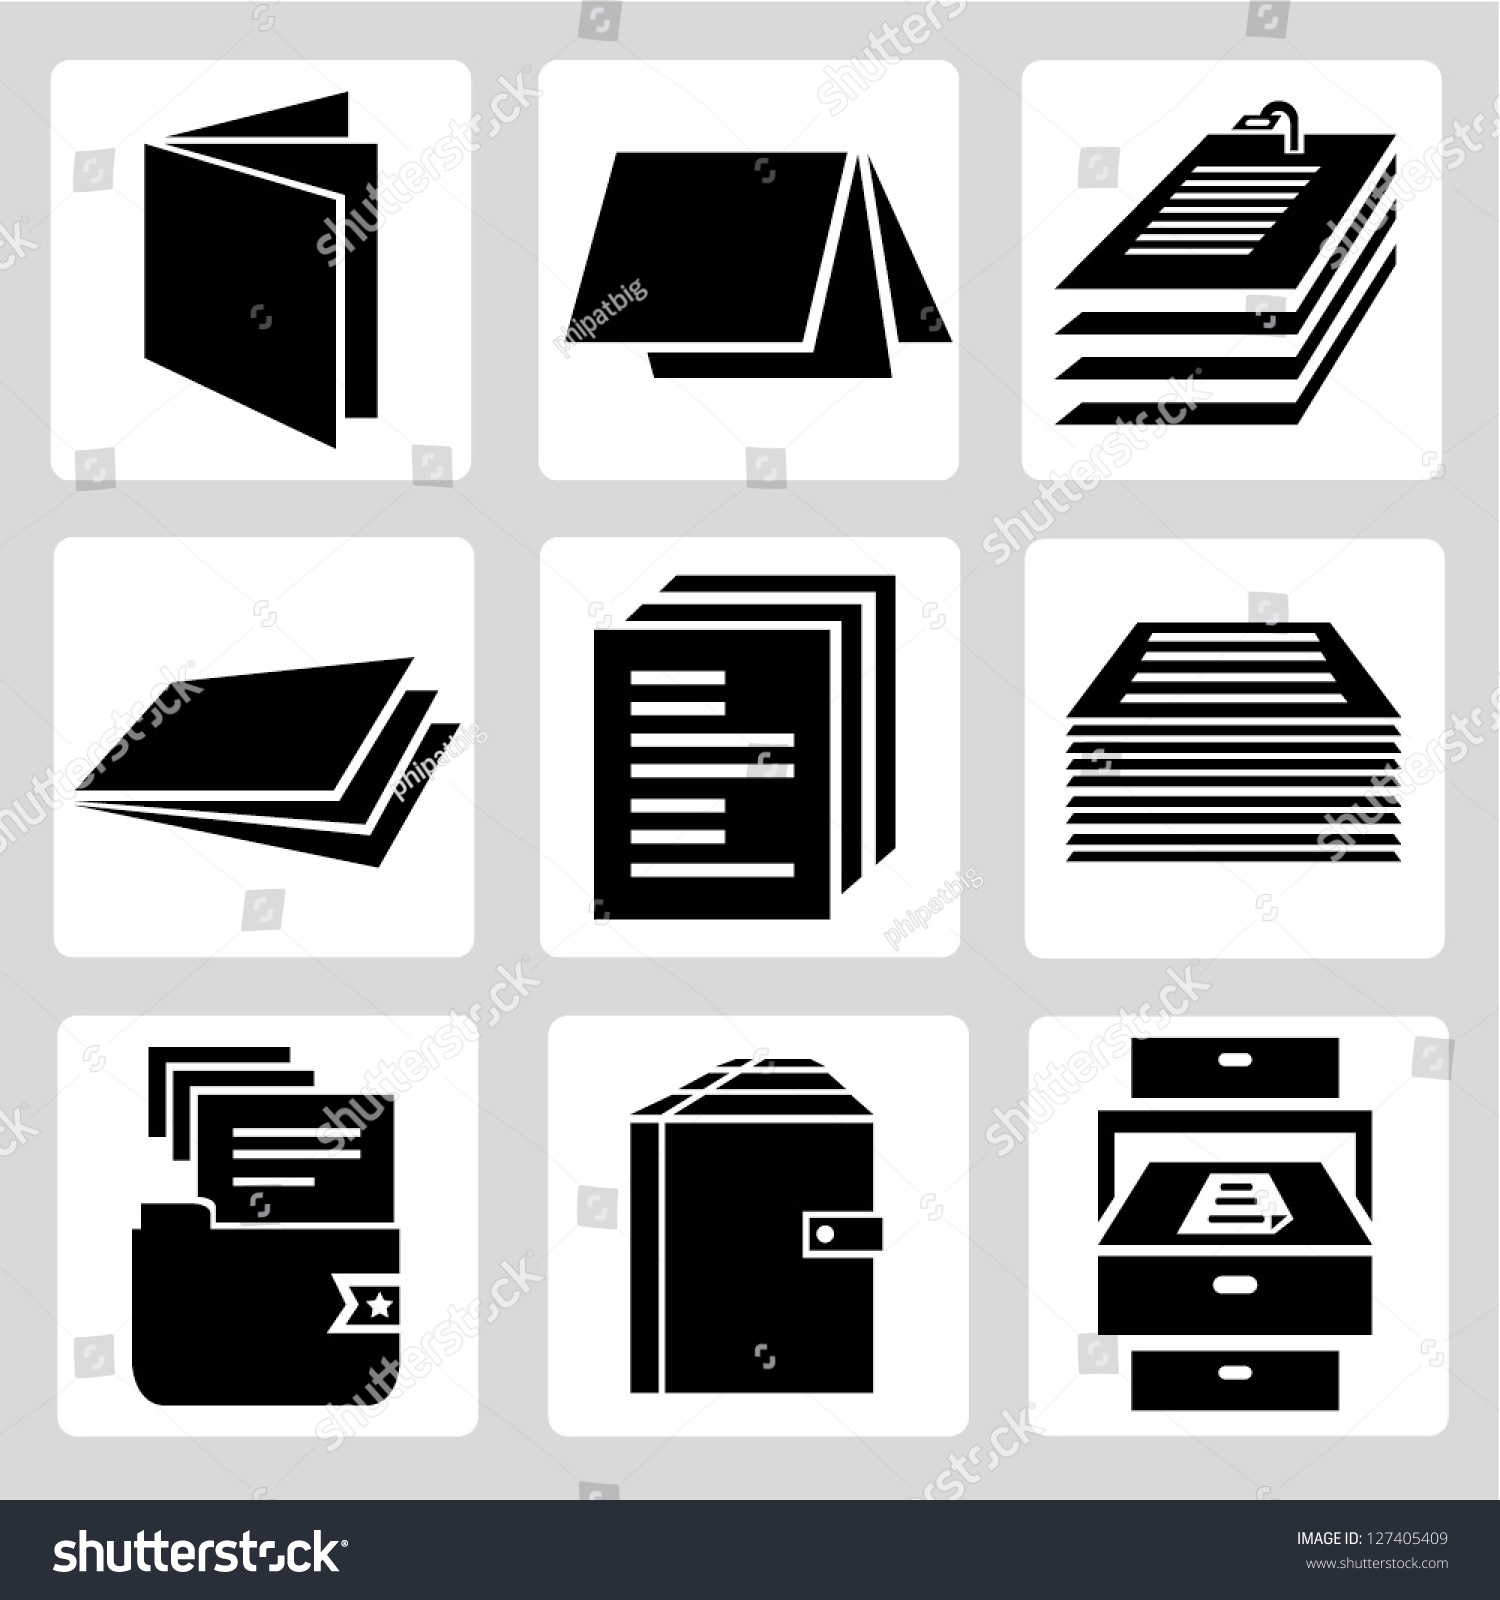 document icon set stack paper sign stock vector (royalty free